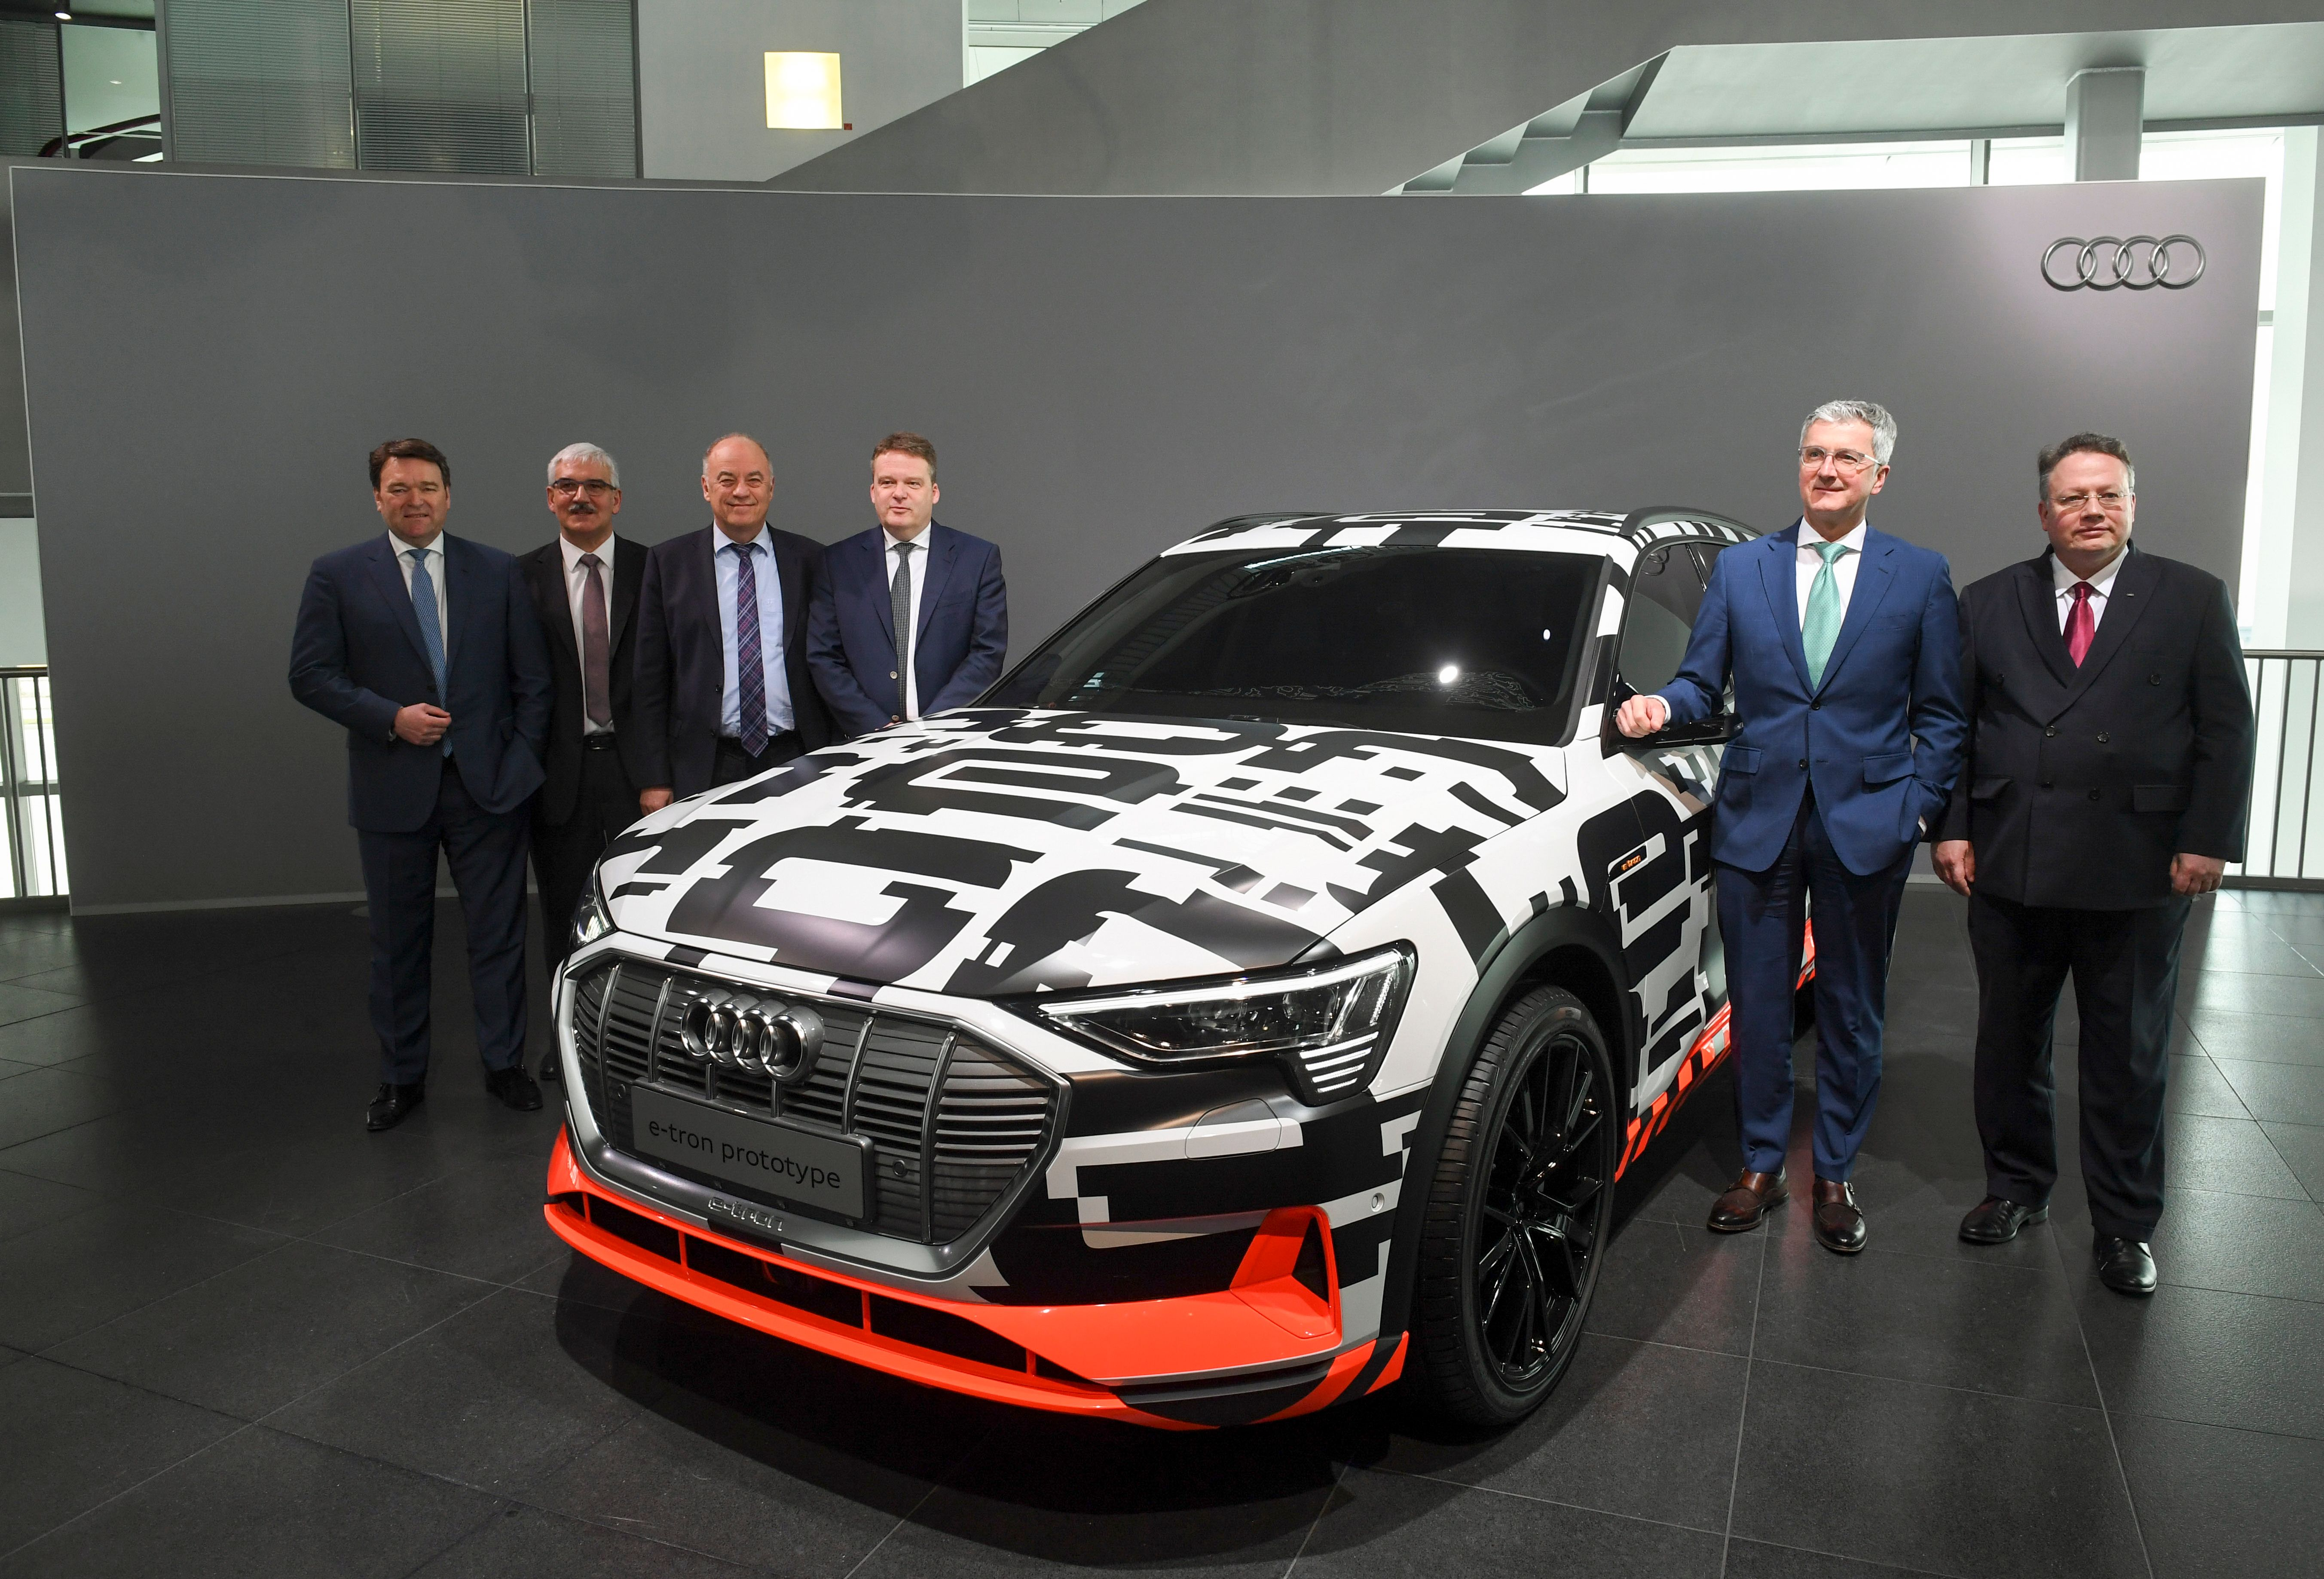 GERMANY-COMPANY-EARNINGS-AUDI